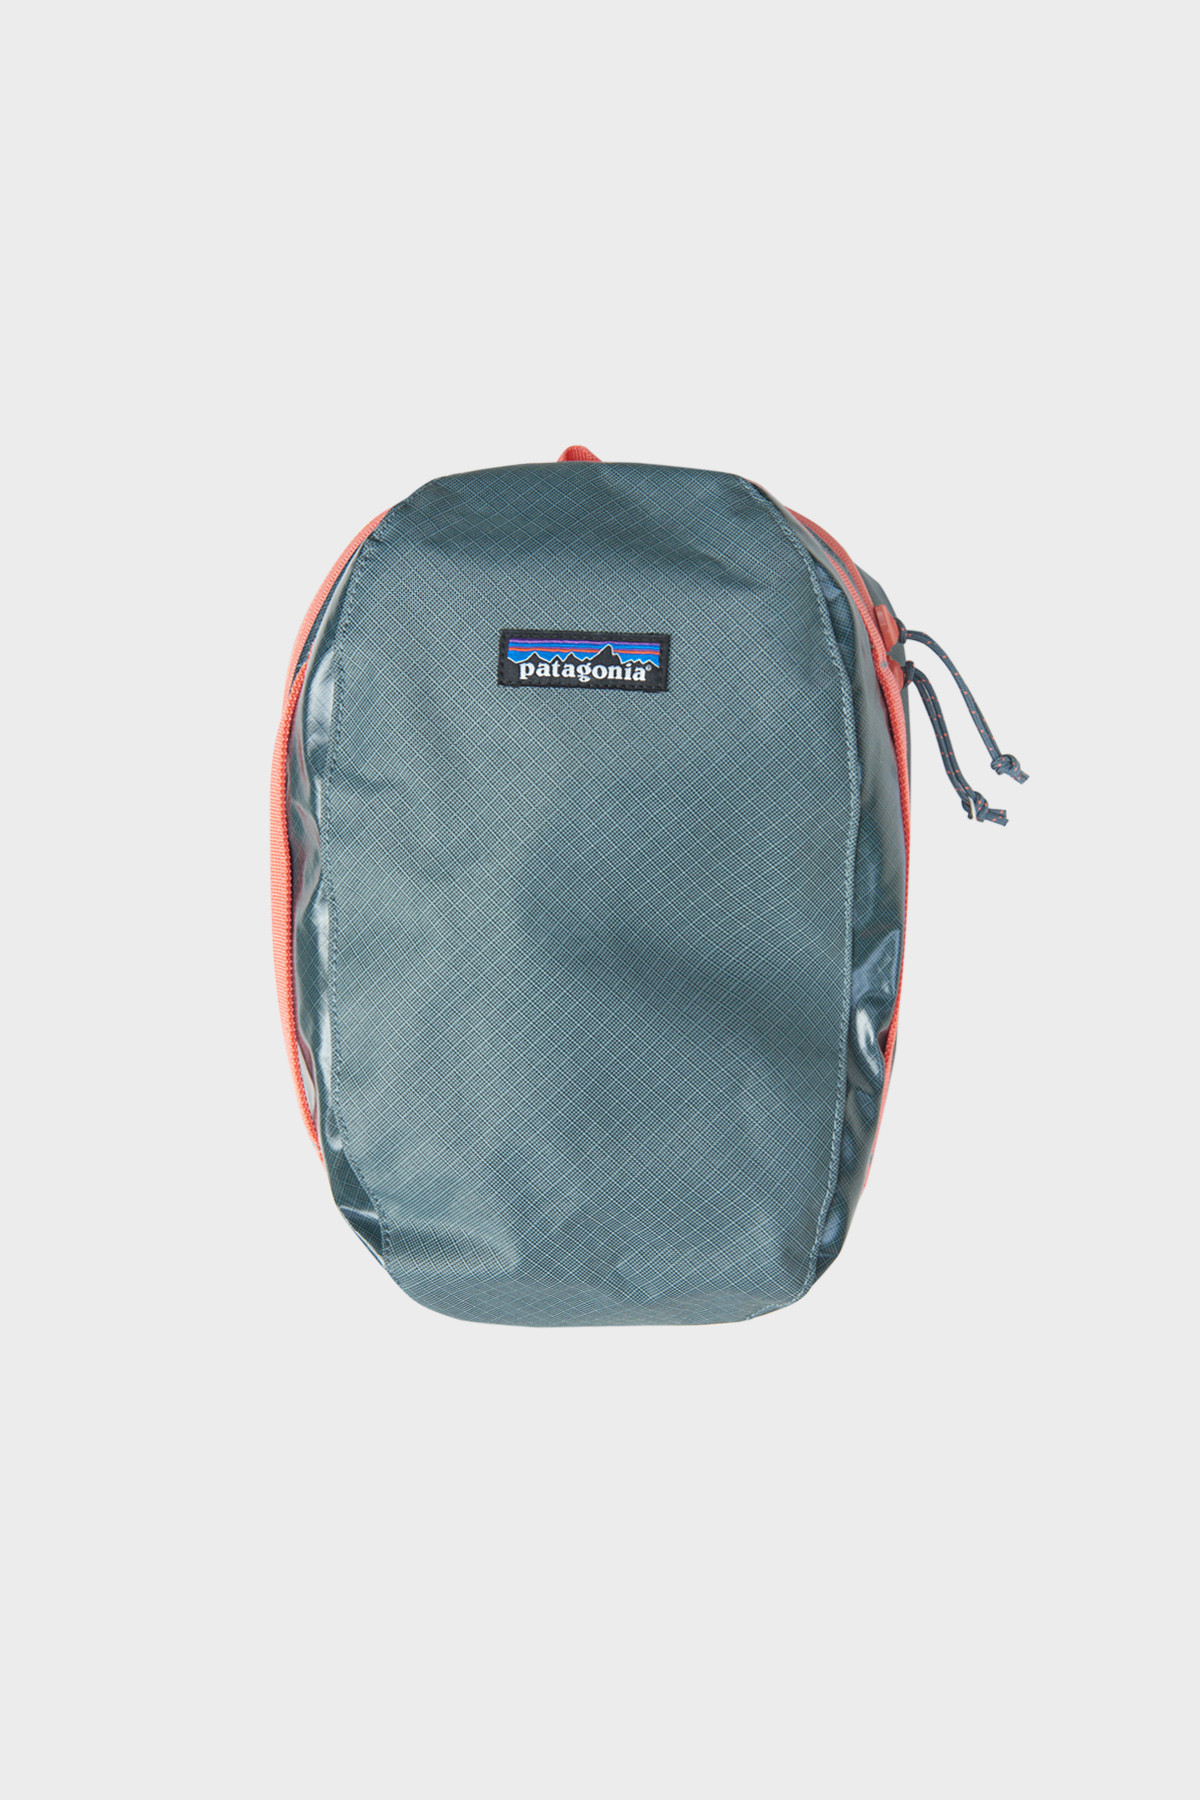 patagonia - black hole cube 6L medium - plume grey